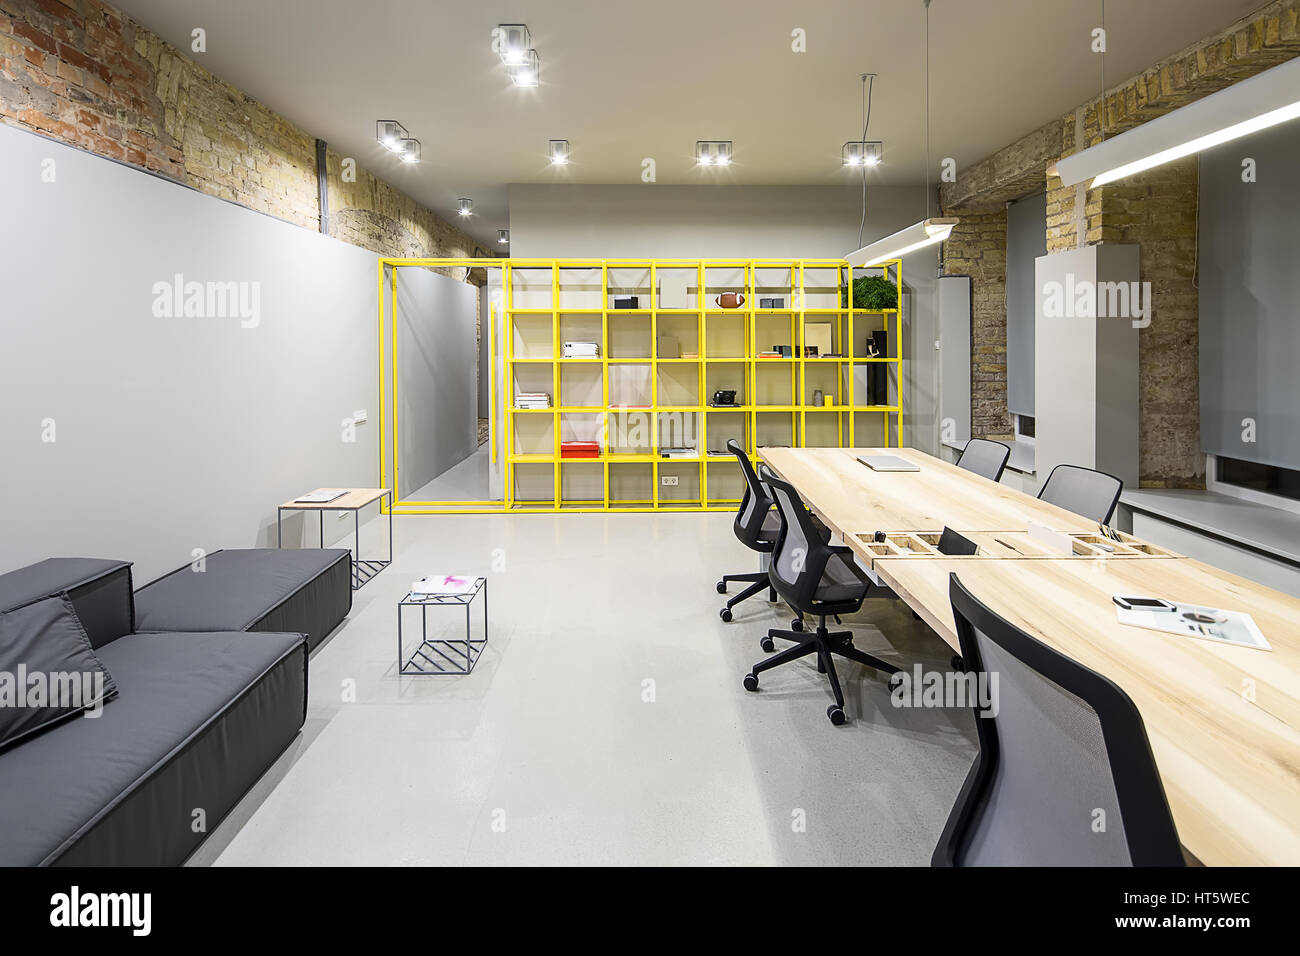 Loft Style Office With Gray And Brick Walls. There Are Glowing Lamps, Dark  Sofa With Pillow, Wooden Tables With Chairs, Small Metal Tables, Metal Yell